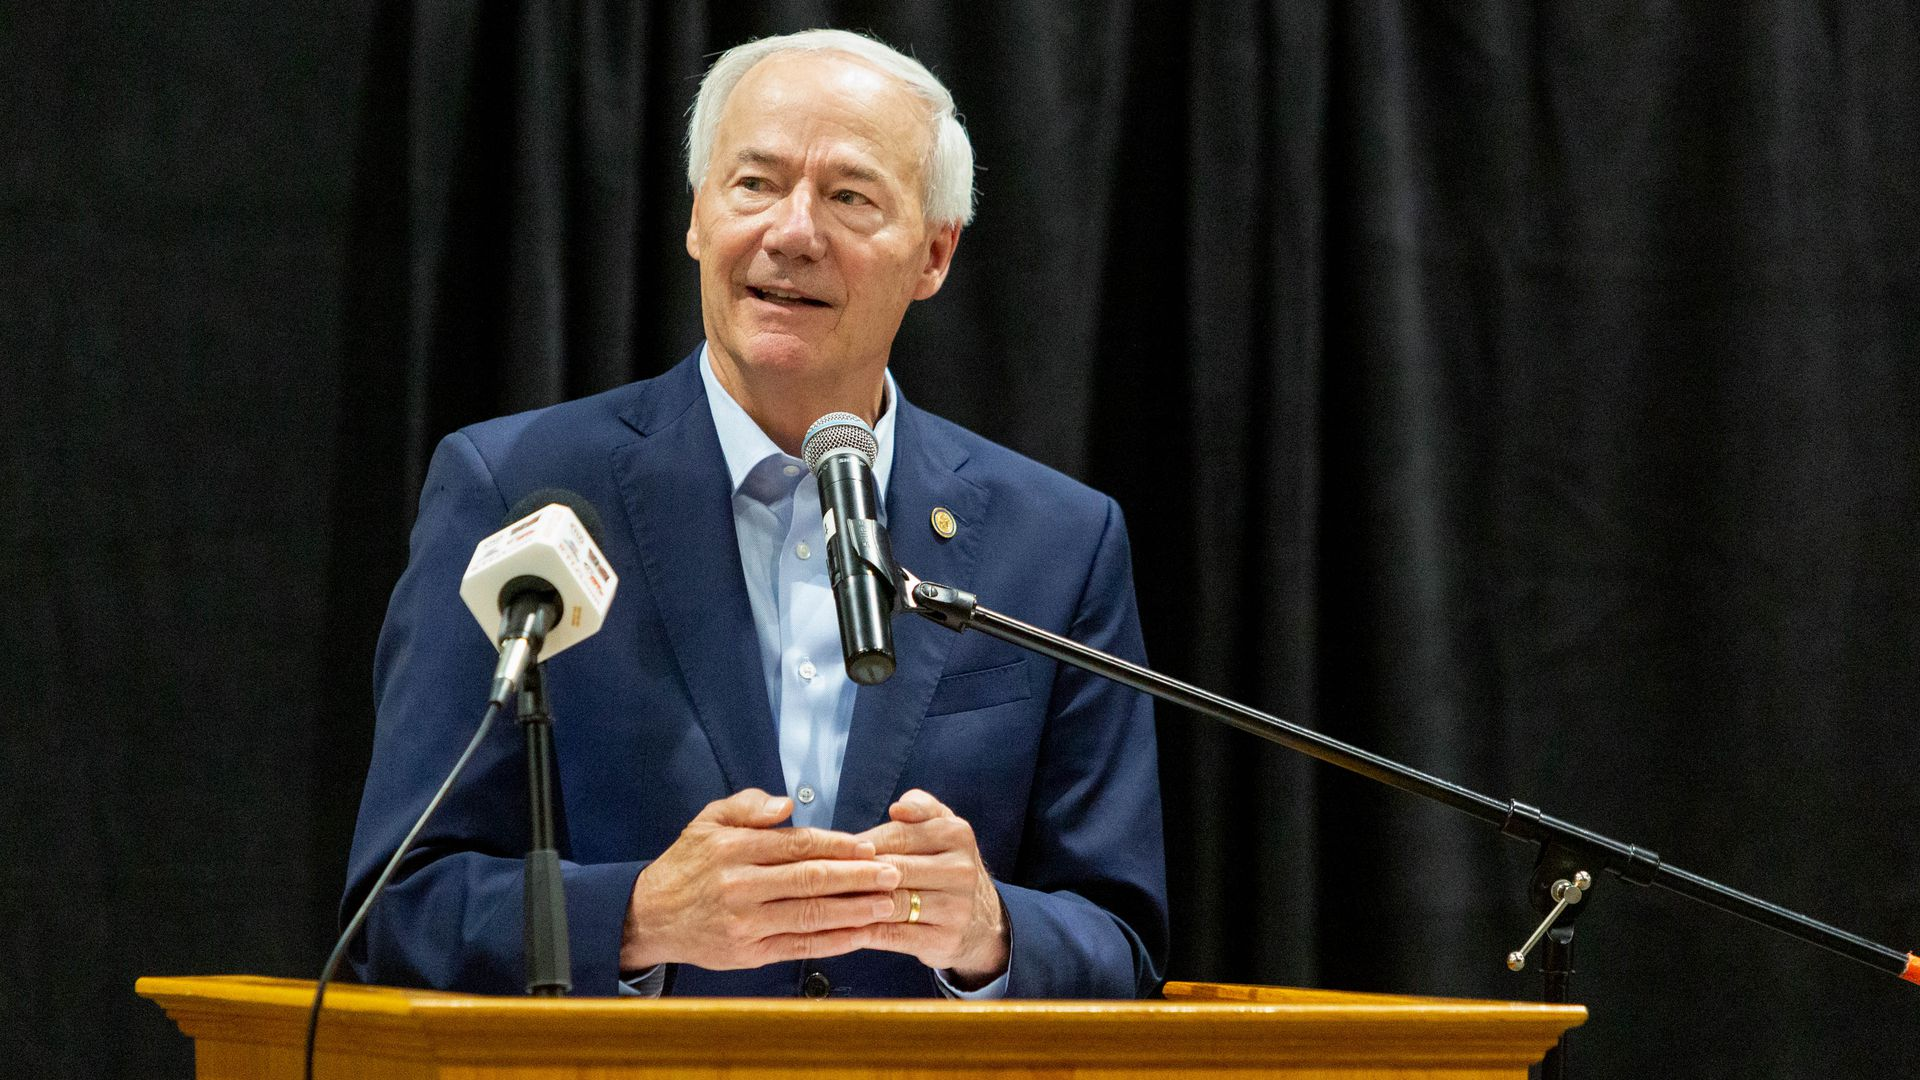 Asa Hutchinson, governor of Arkansas, during a community town hall to promote Covid-19 vaccinations  in Mountain Home, Arkansas, U.S., on Monday, July 16